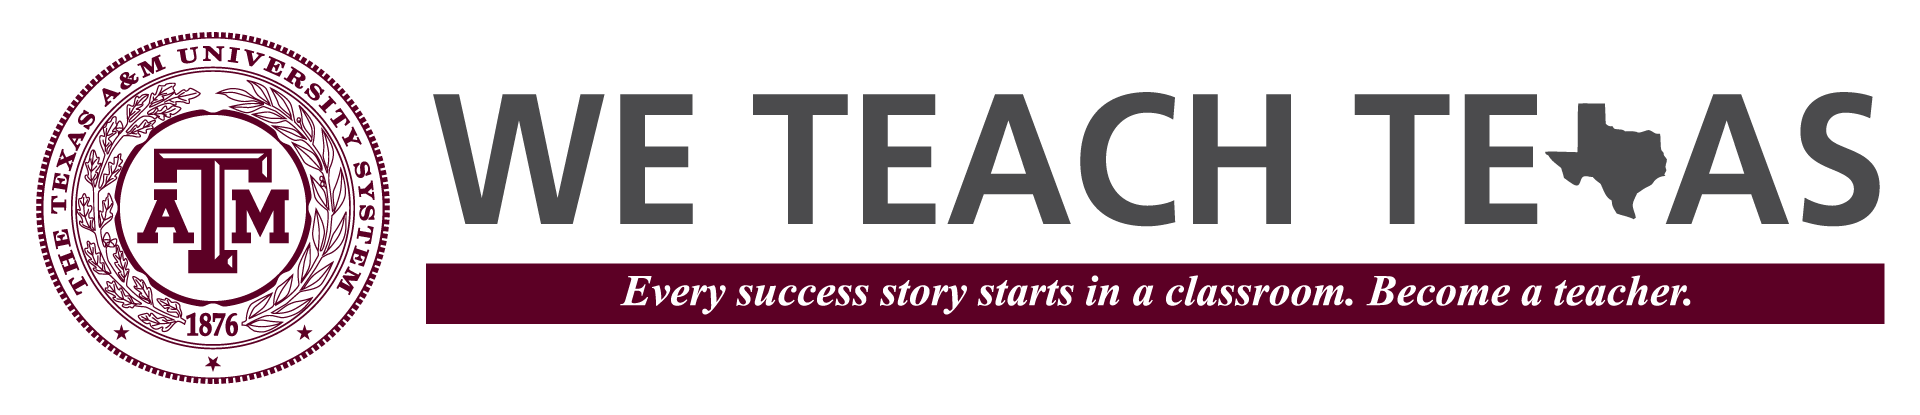 We Teach Texas logo